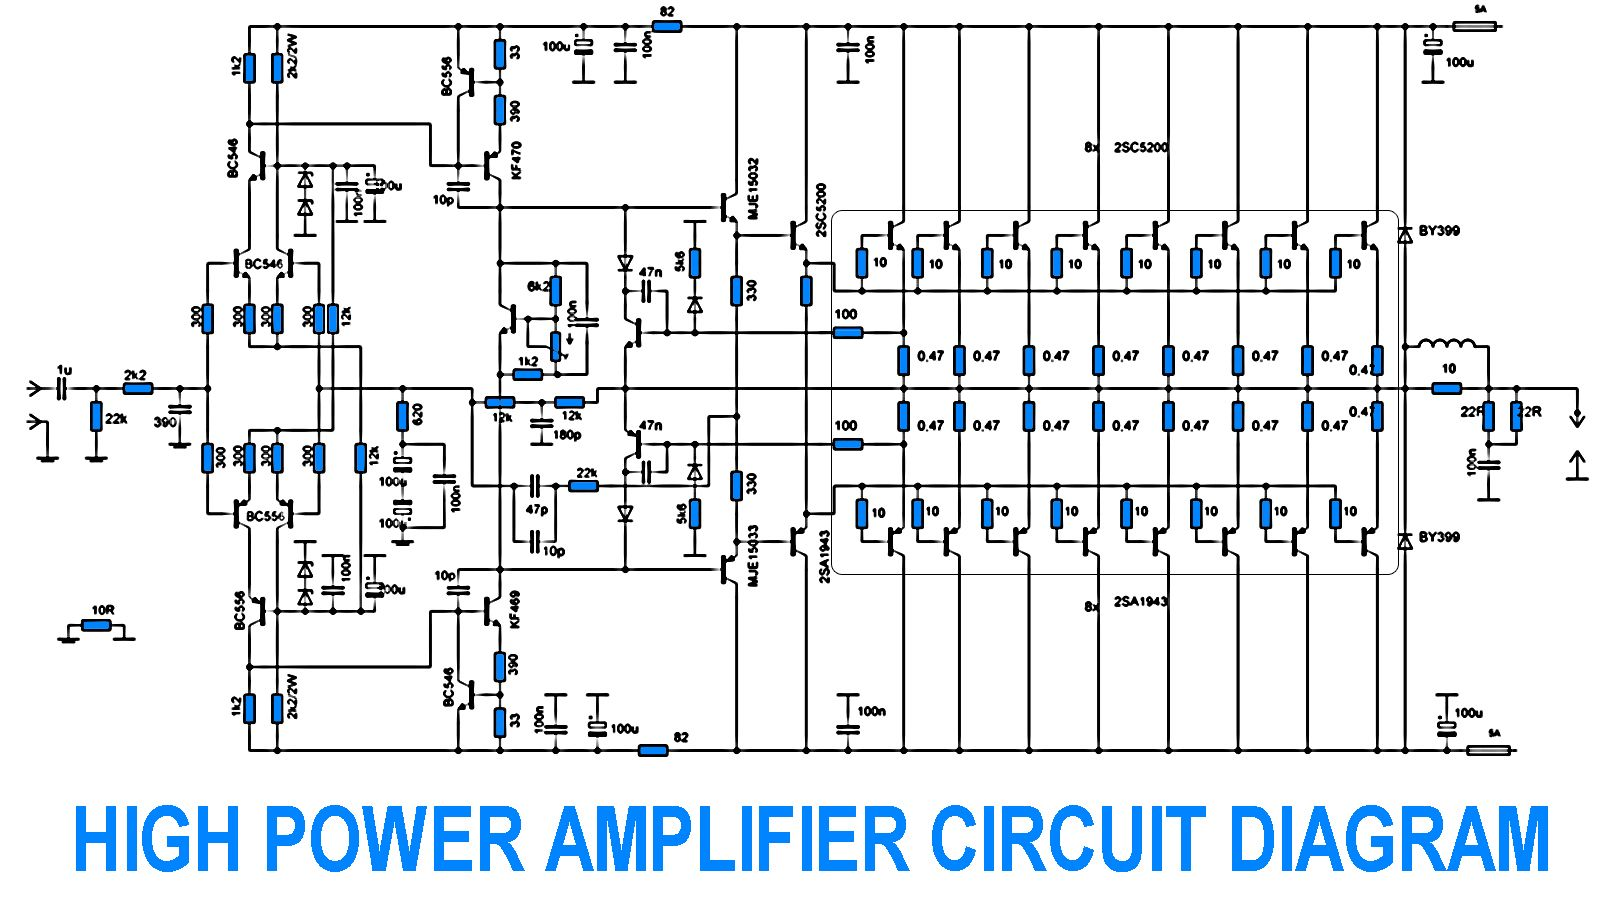 eef36eb807714a12b7a2d48a36c469e5 700w power amplifier with 2sc5200, 2sa1943 other project's amplifier schematic diagram at panicattacktreatment.co